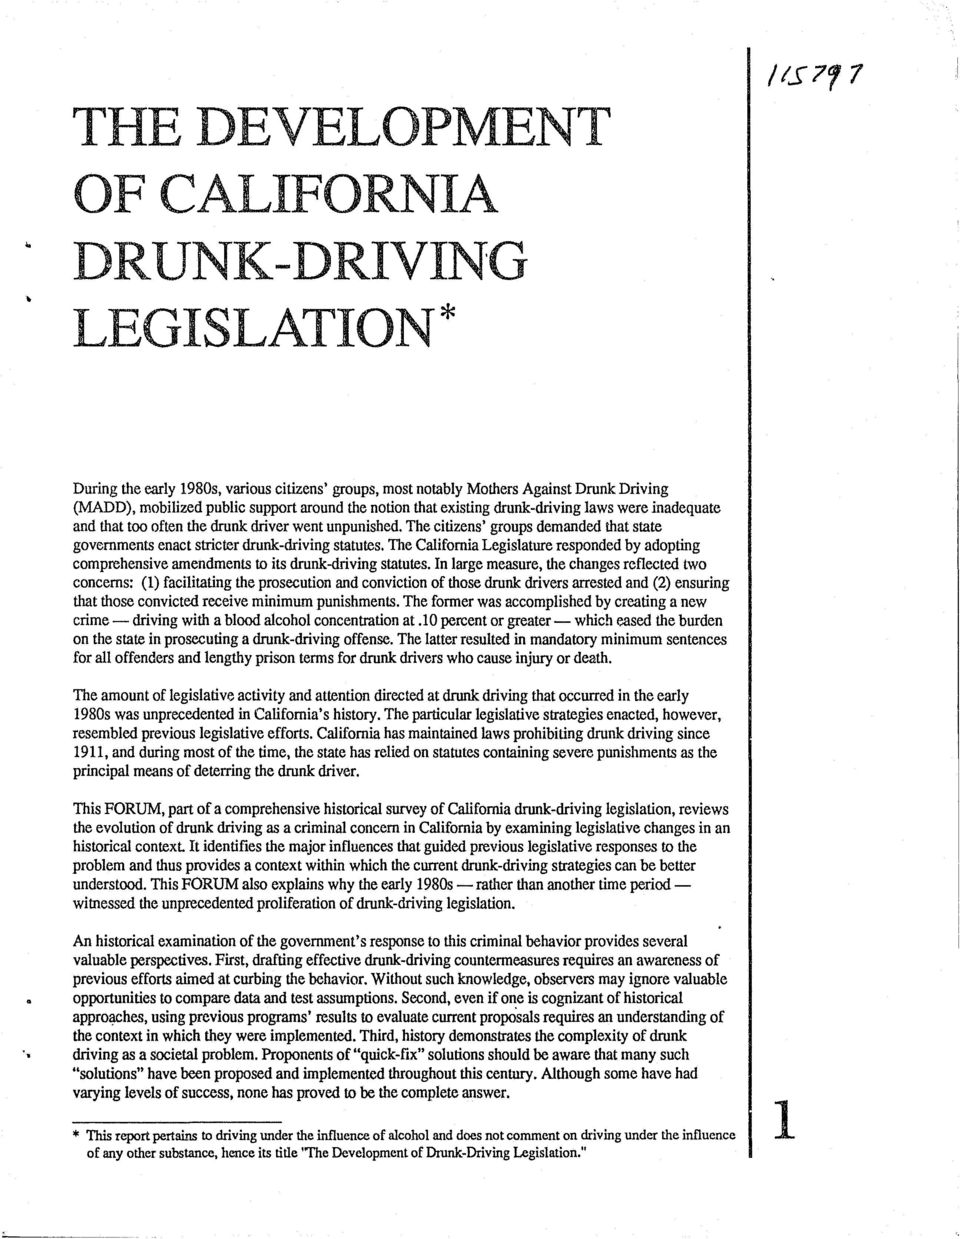 The California Legislature responded by adopting comprehensive amendments to its drunk-driving statutes.